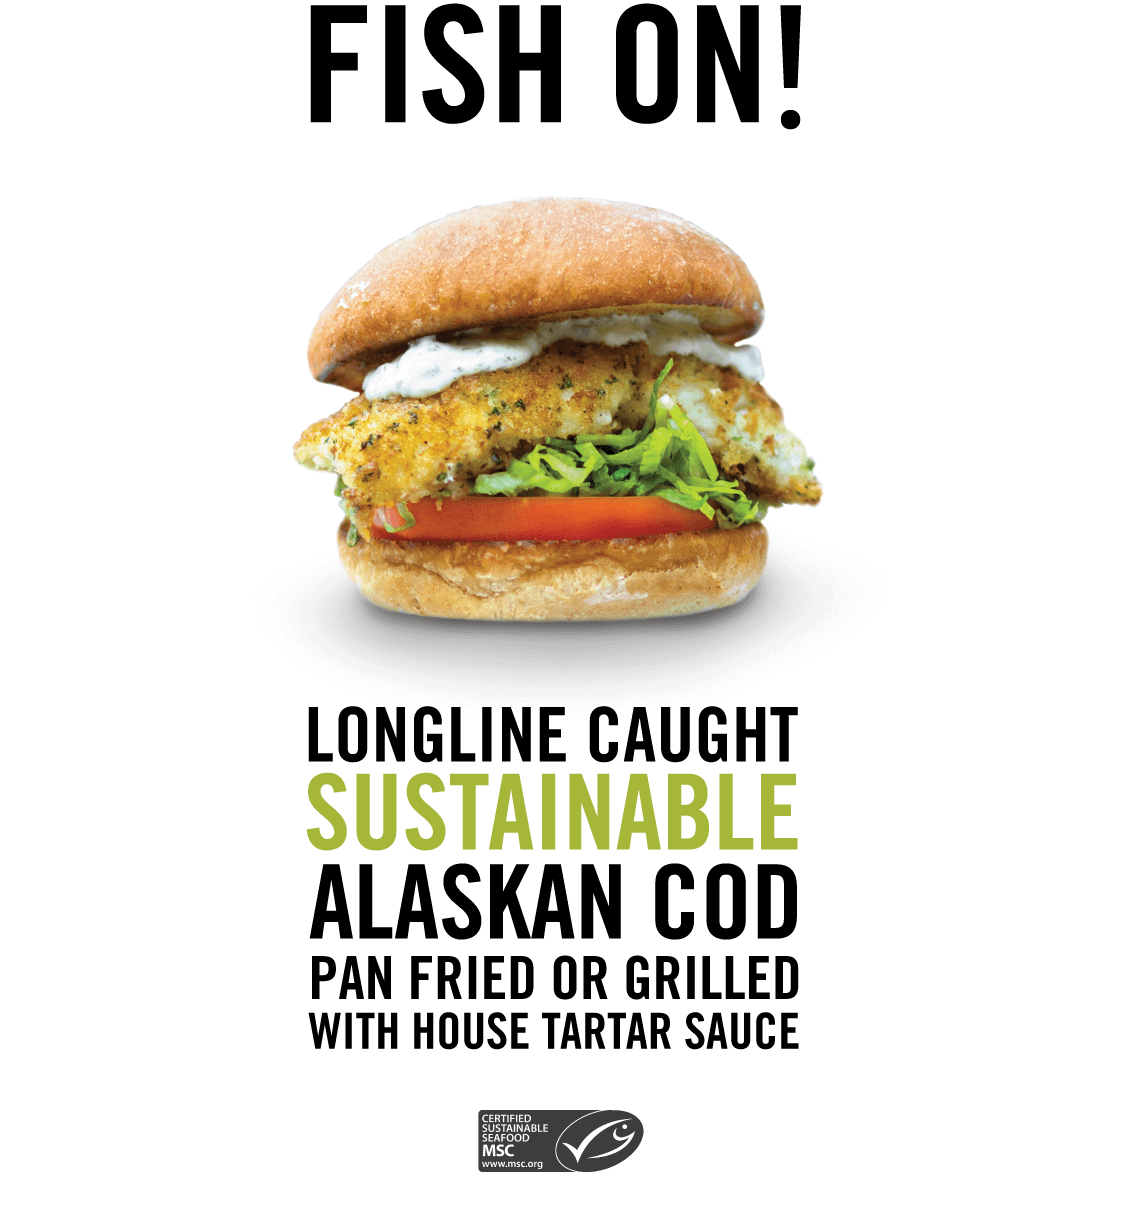 Fish On! Longline caught, sustainable Alaskan Cod - chose pan-fried or grilled, at Burger Lounge!